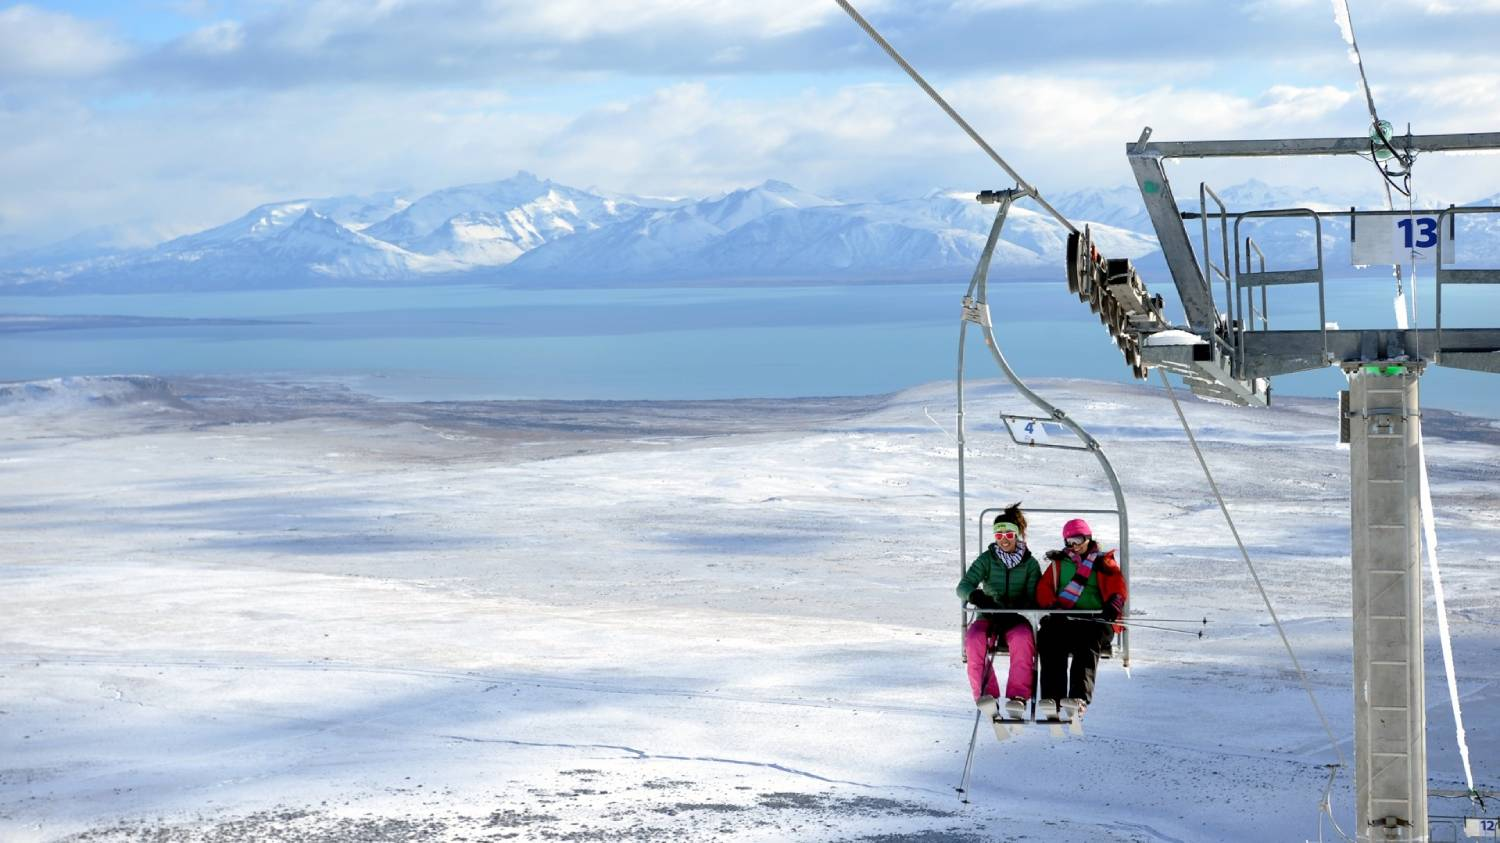 Calafate Mountain Park - Things To Do In El Calafate